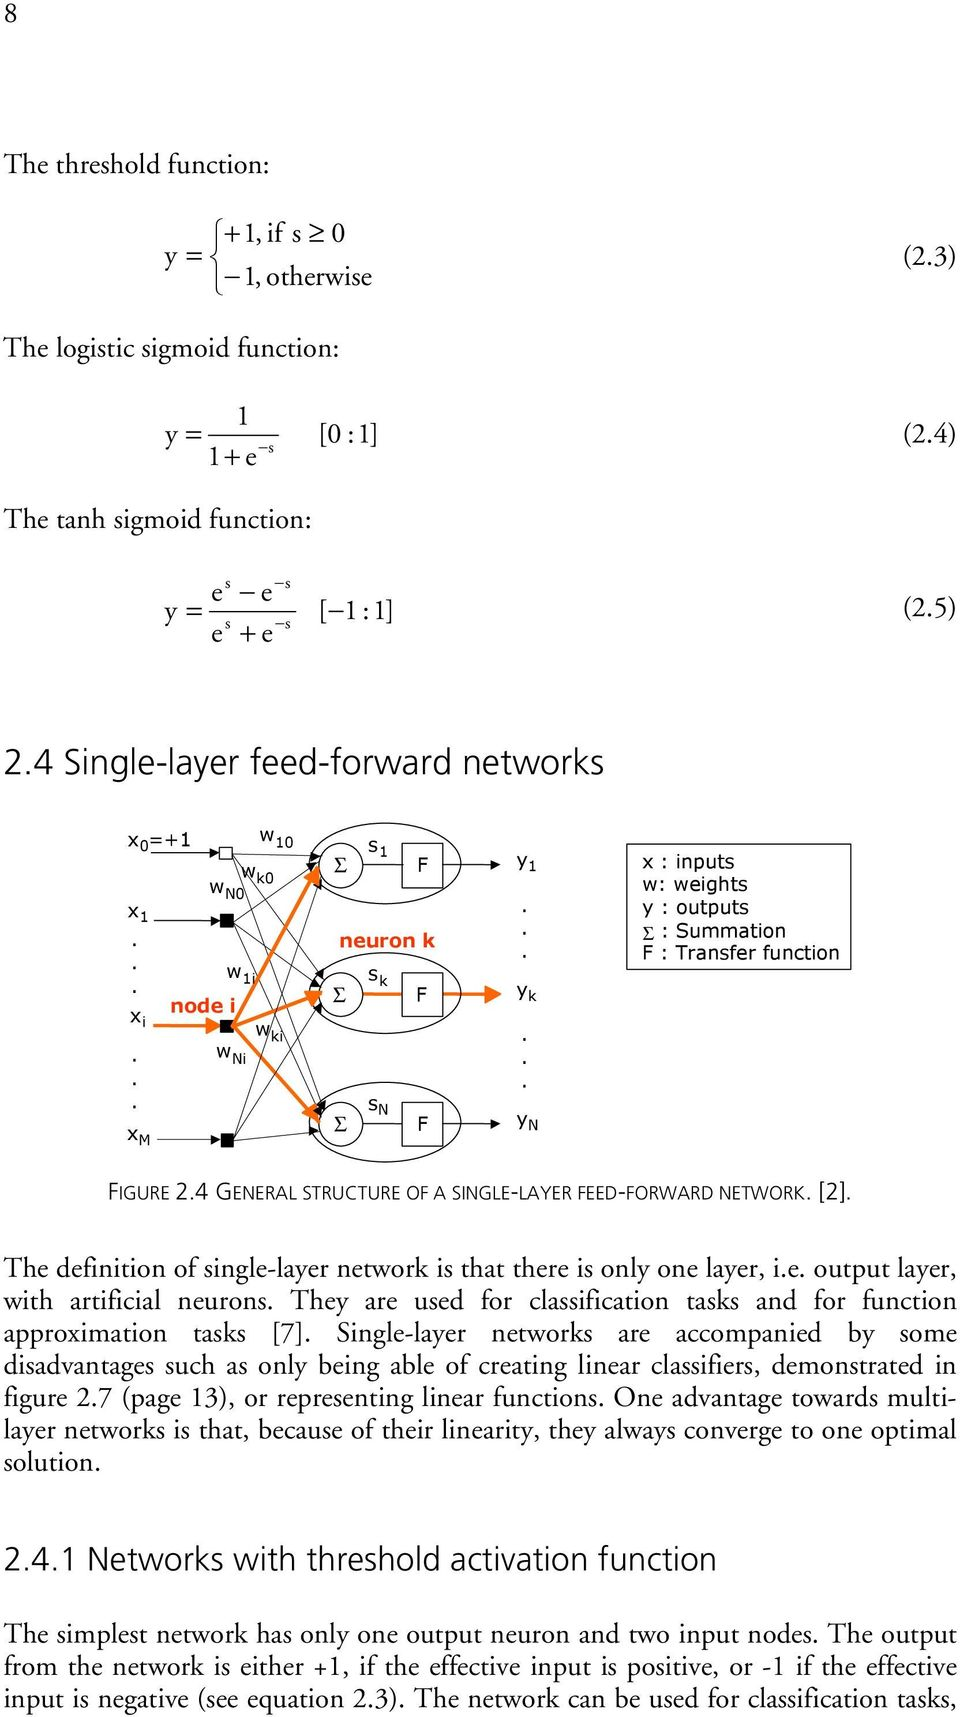 FIGURE 24 GENERAL STRUCTURE OF A SINGLE-LAYER FEED-FORWARD NETWORK [2] The definition of single-layer network is that there is only one layer, ie output layer, with artificial neurons They are used